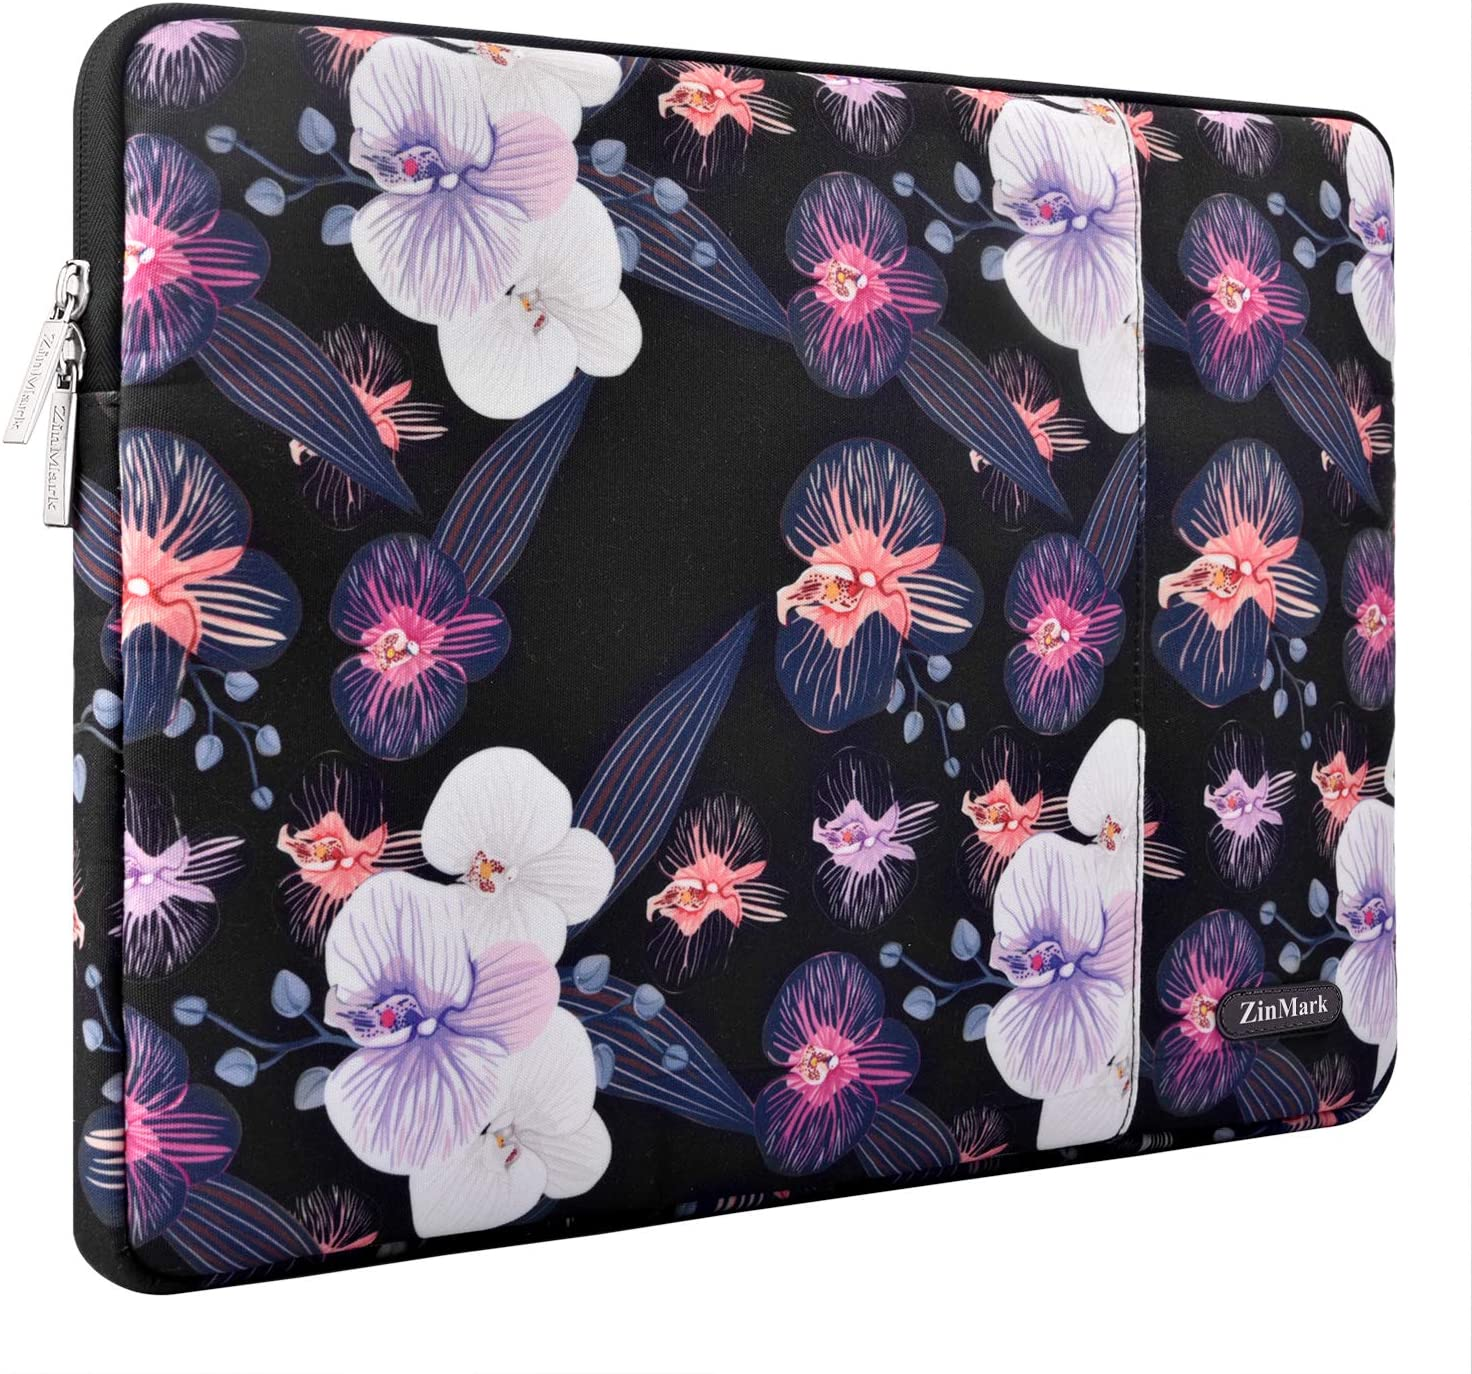 ZinMark Laptop Sleeve 13 Inch Compatible 2019 2018 MacBook Air 13 Inch Retina A1932, 13 Inch MacBook Pro A2159 A1989 A1706 A1708 | XPS 13, Water-Resistant Polyester Notebook Case, Jellyfish Flower